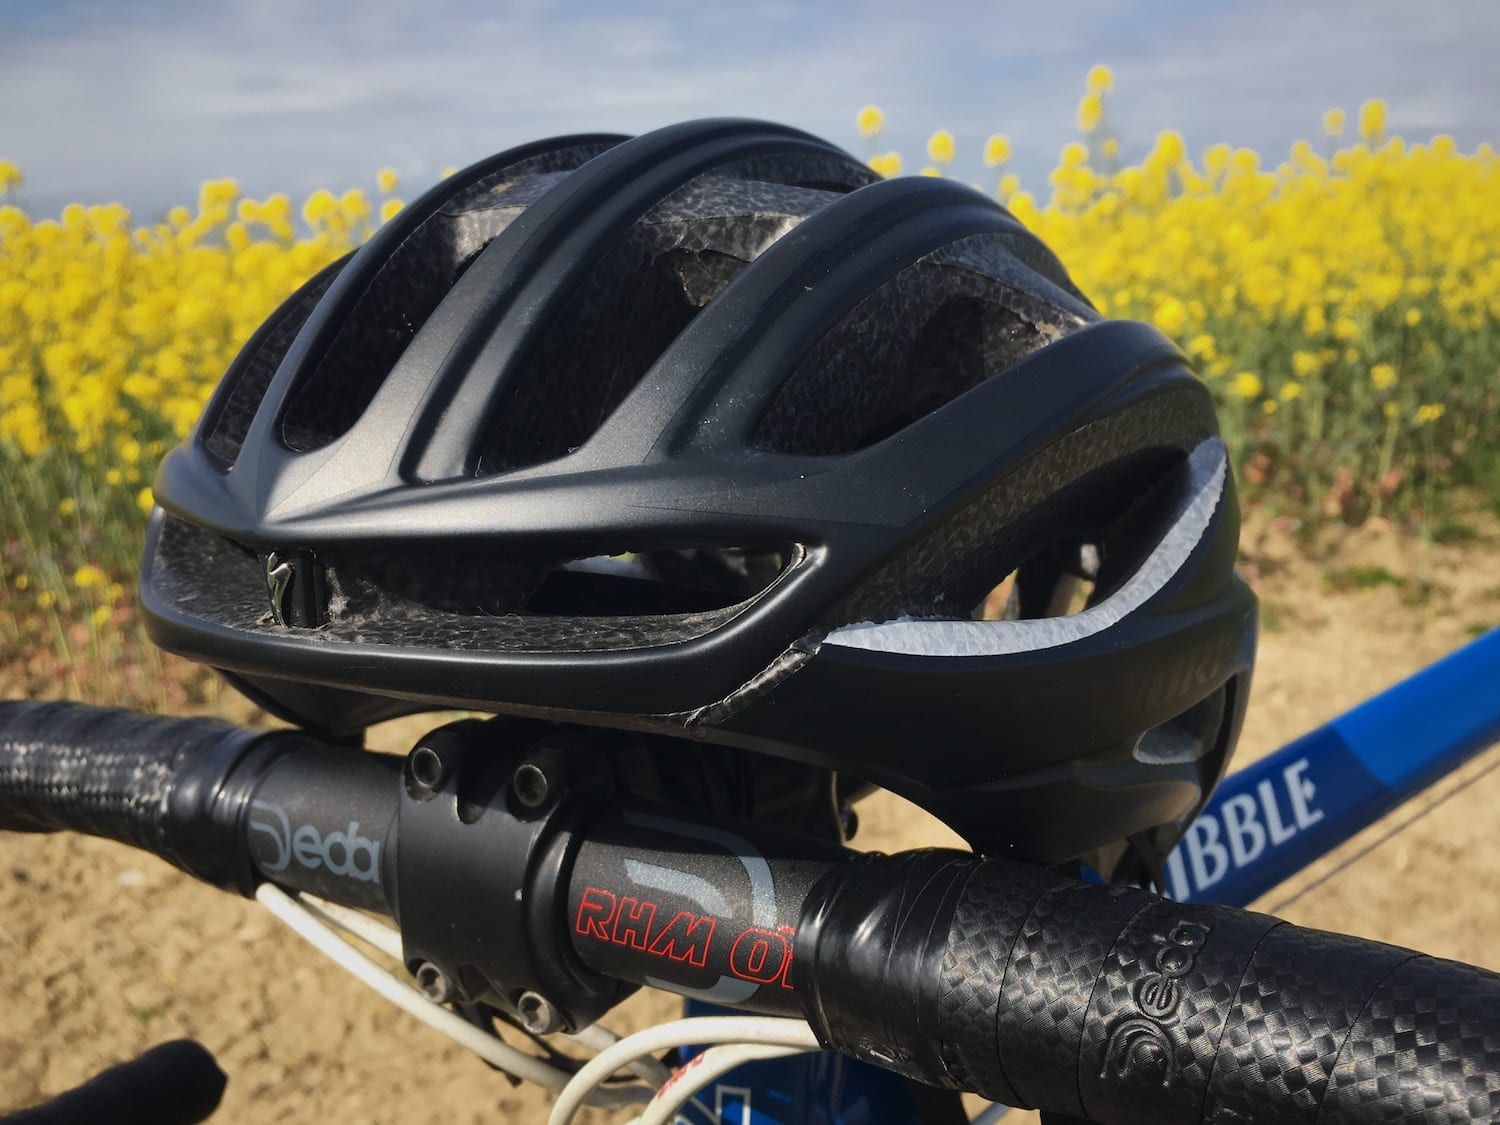 S-Works Prevail 2 featherweight helmet offers heavyweight performance